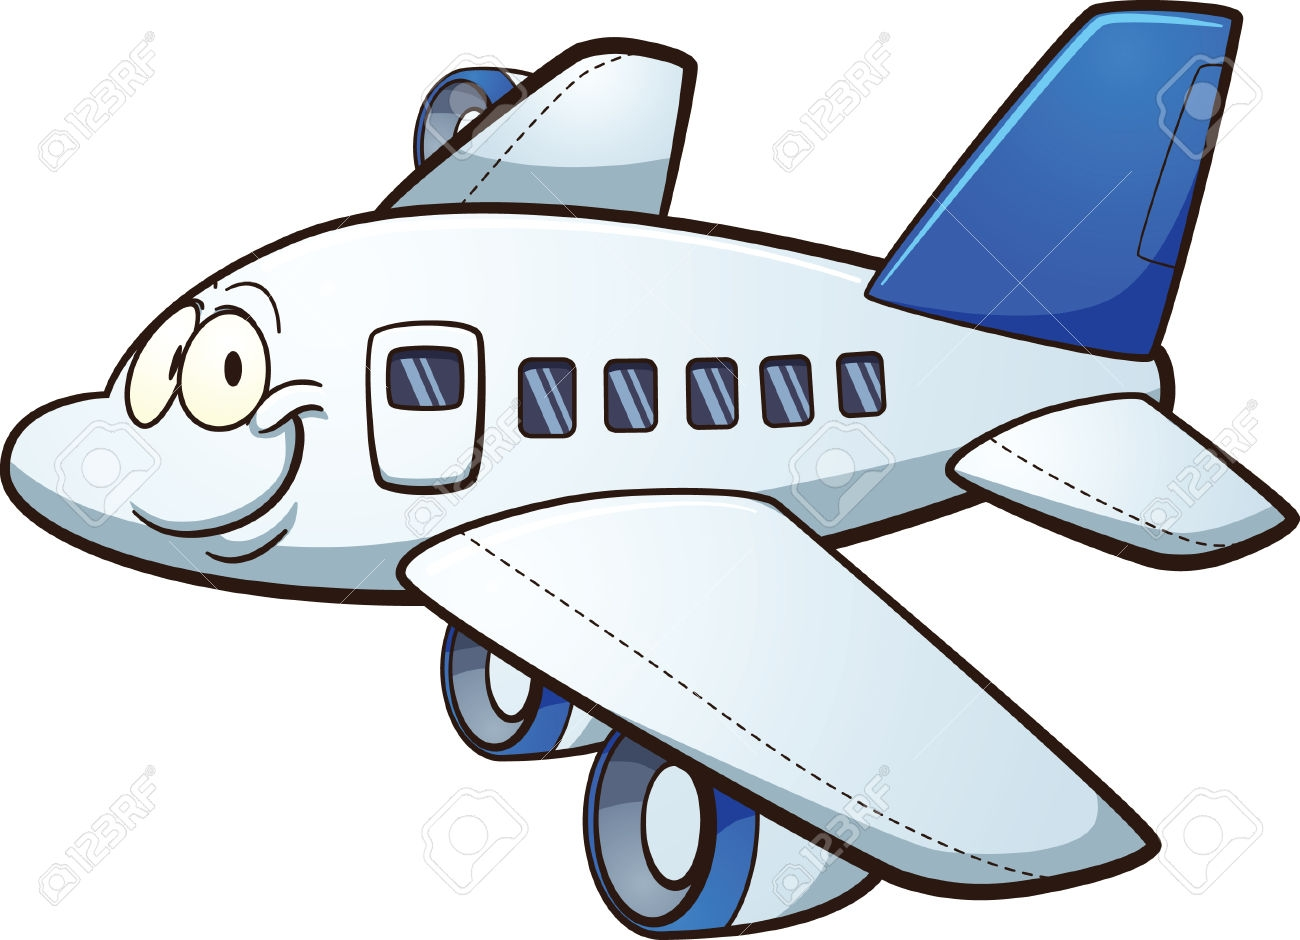 Airplane clipart facing left clip art royalty free Planes Clipart | Free download best Planes Clipart on ClipArtMag.com clip art royalty free